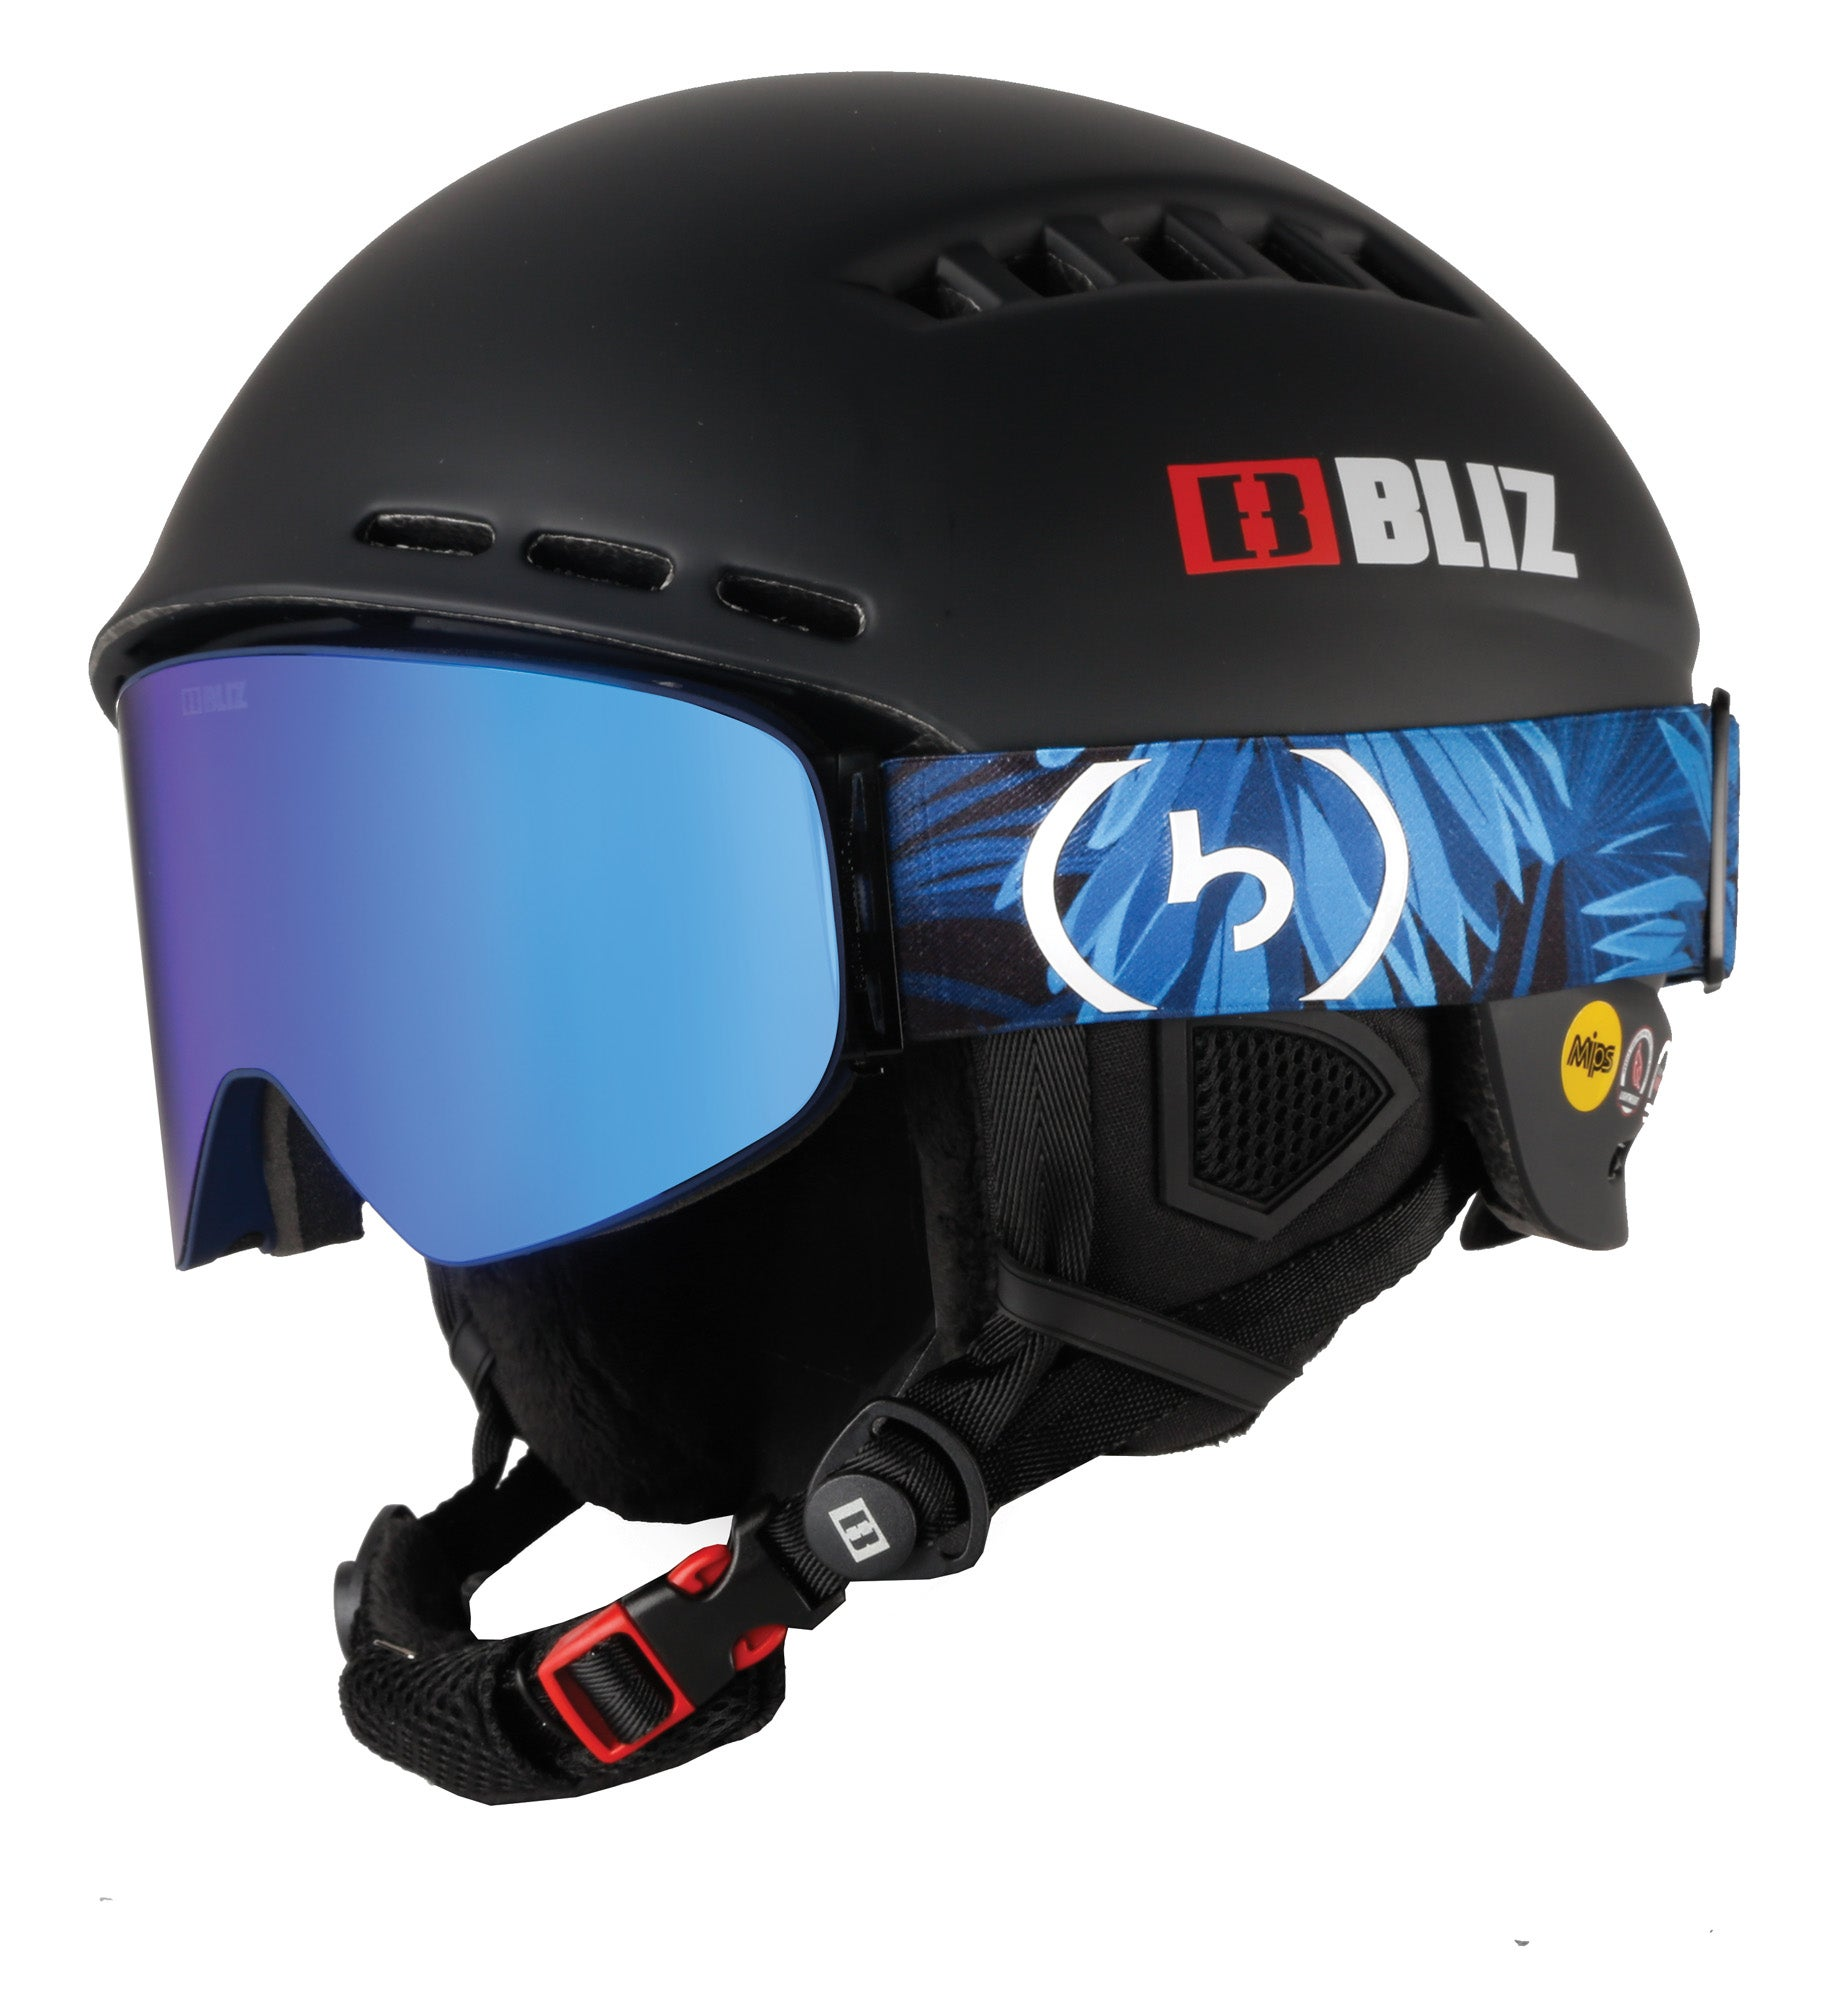 Bliz Head Cover MIPS Helmet and Flow Goggle